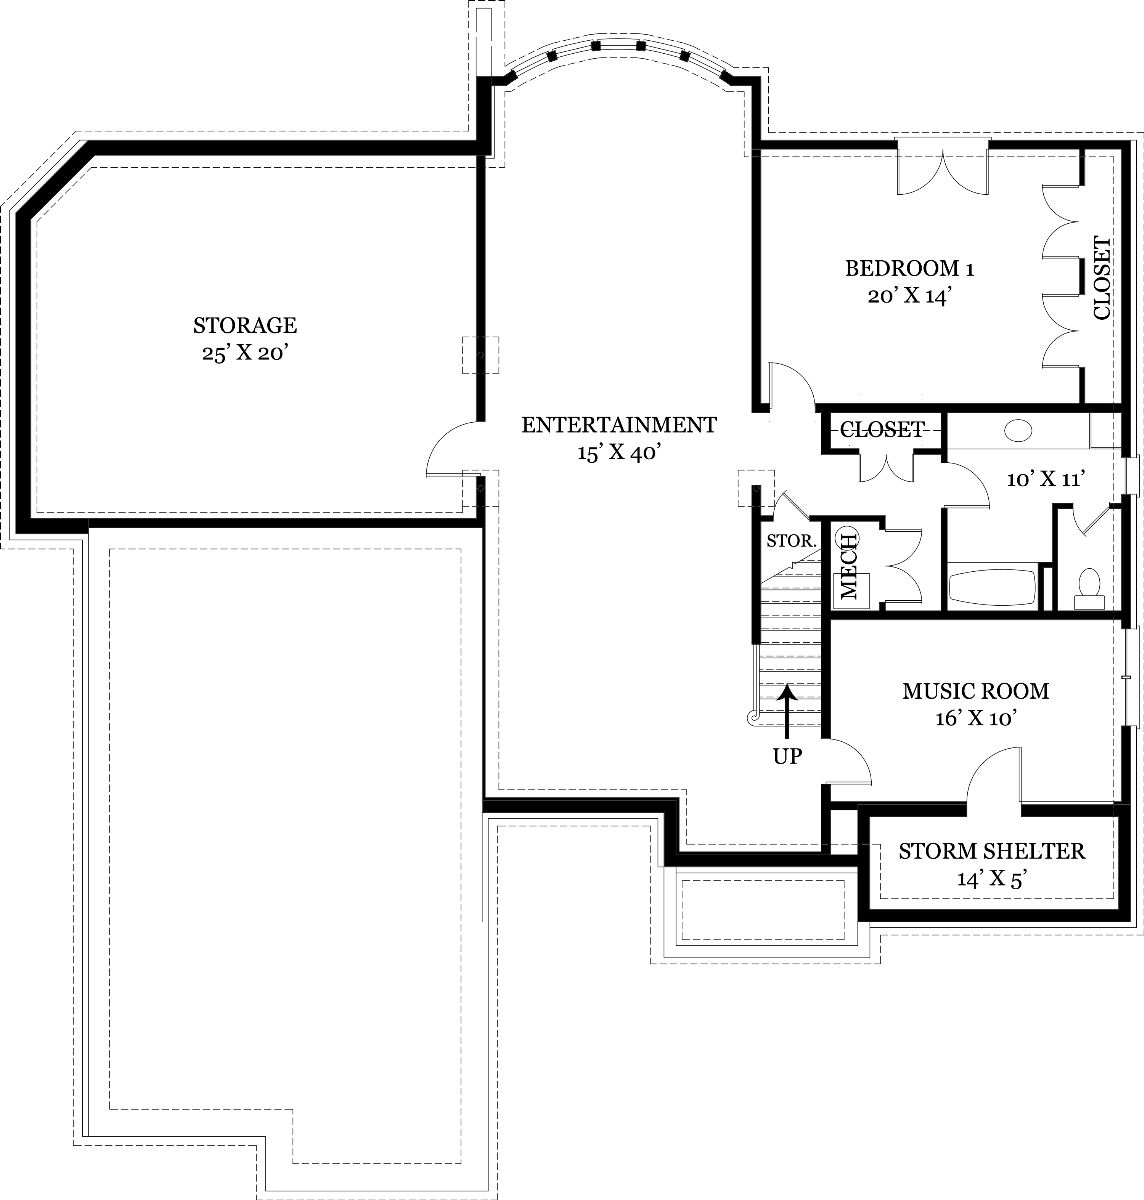 Basement Floor Plan image of Featured House Plan: BHG - 7889